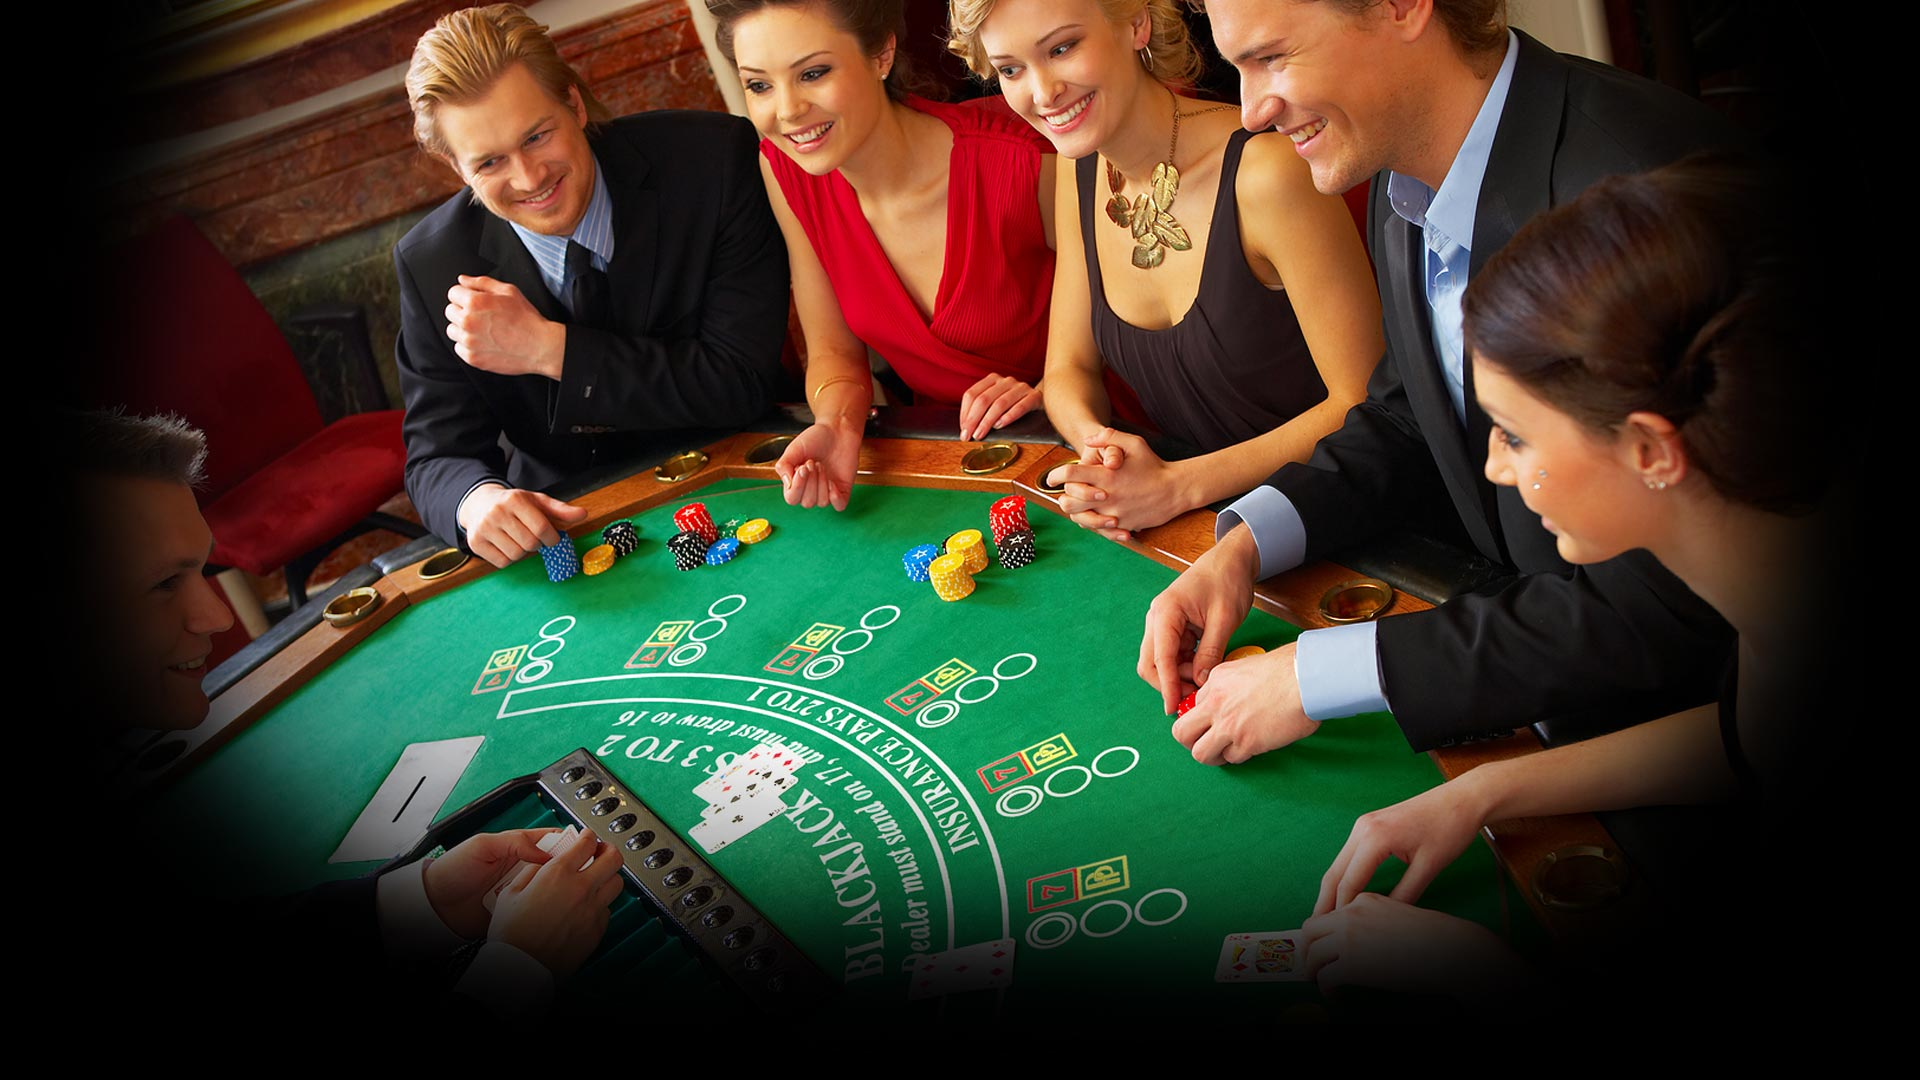 Blackjack gratuit : comment se positionner